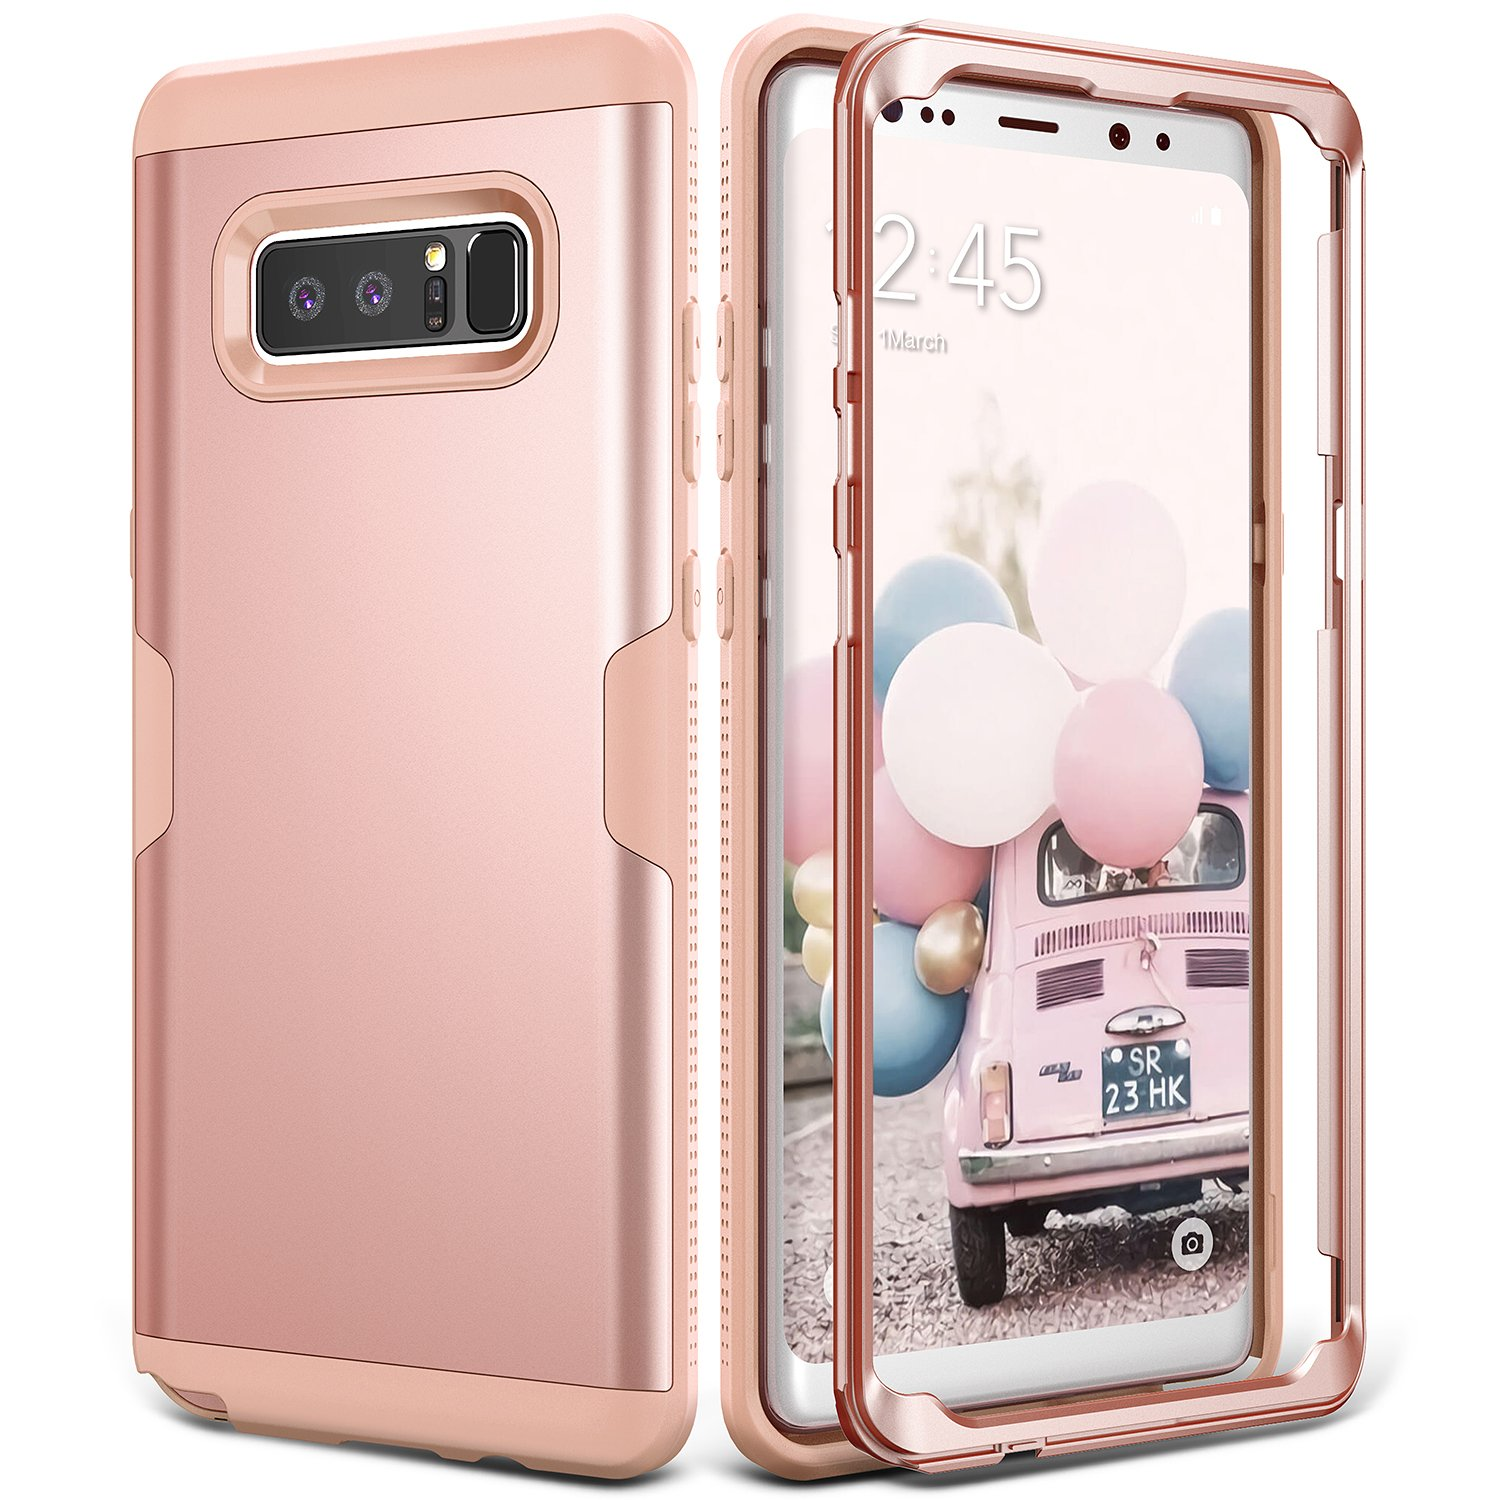 buy online 7a01f 4a7fe Galaxy Note 8 Case, YOUMAKER Rose Gold Full Body Heavy Duty Protection  Shockproof Slim Fit Case Cover for Samsung Galaxy Note 8 (2017 Release)  Without ...